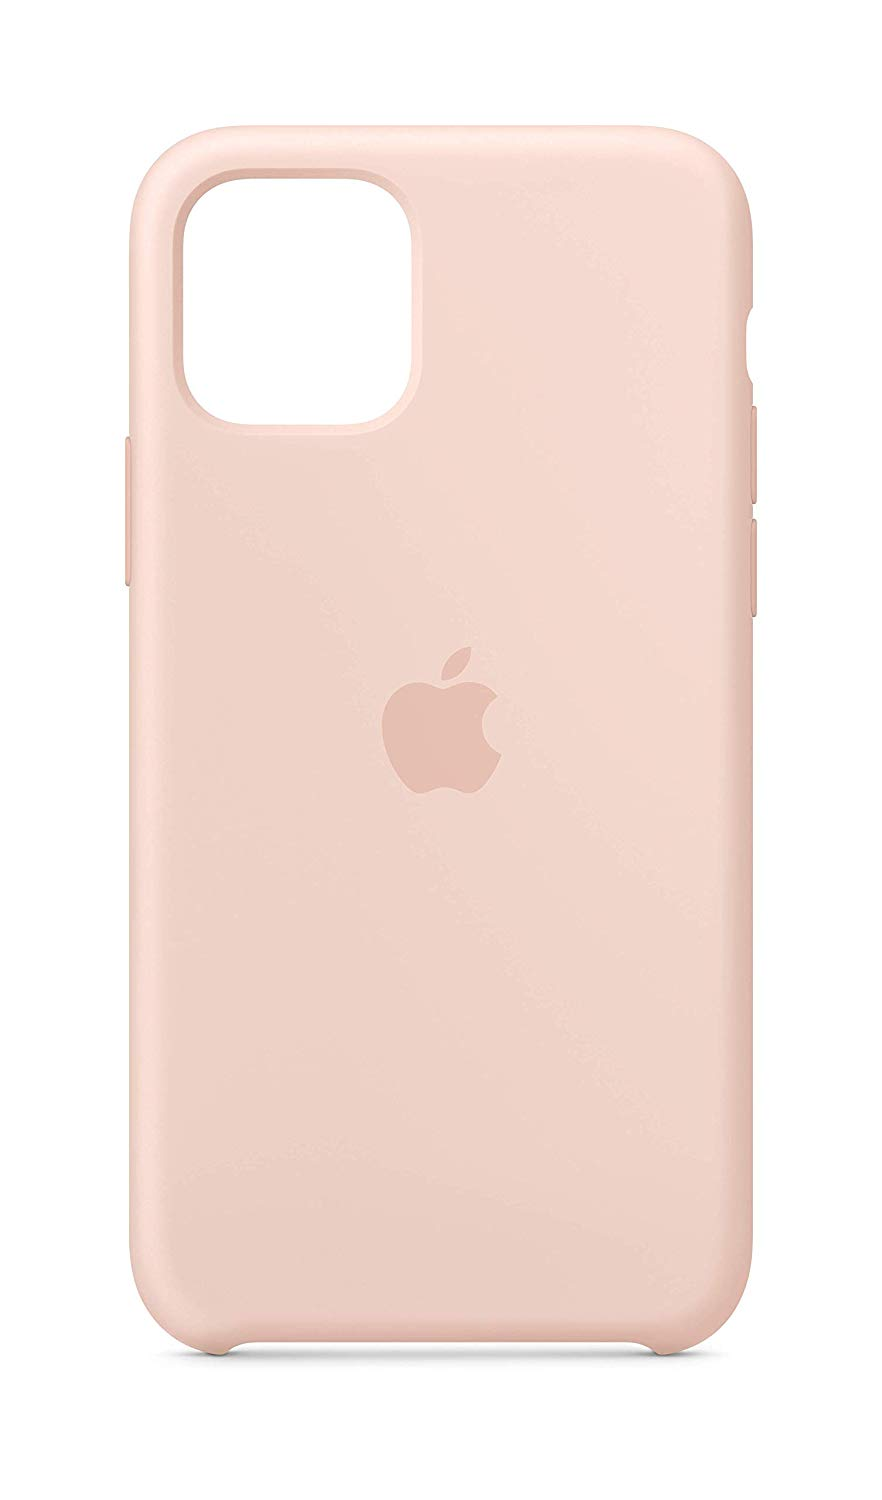 Torbice in ovitki APPLE IPHONE 11 PRO MAX SILICONE CASE - PINK SAND